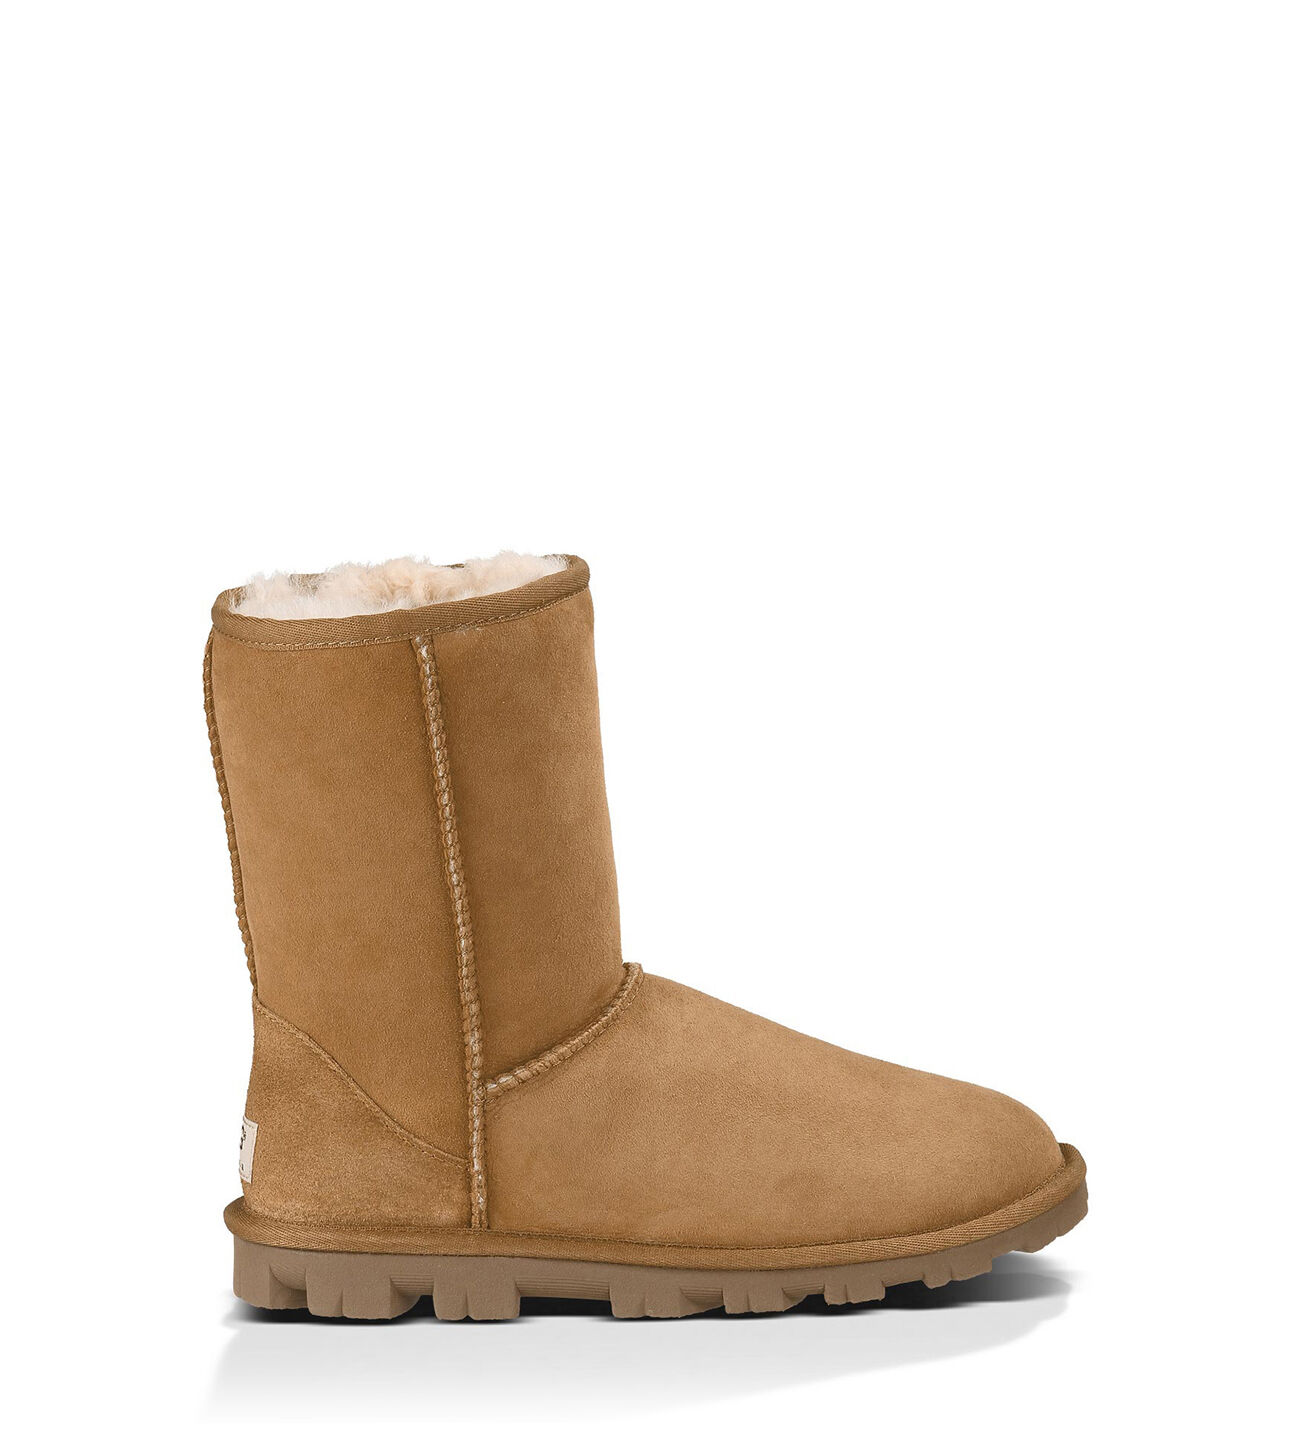 ugg boots stockists london